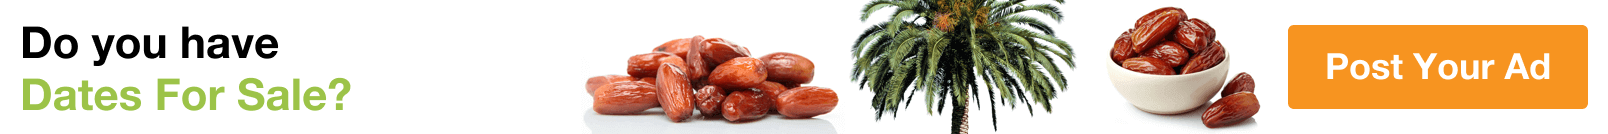 Dates for Sale in Buraimi .